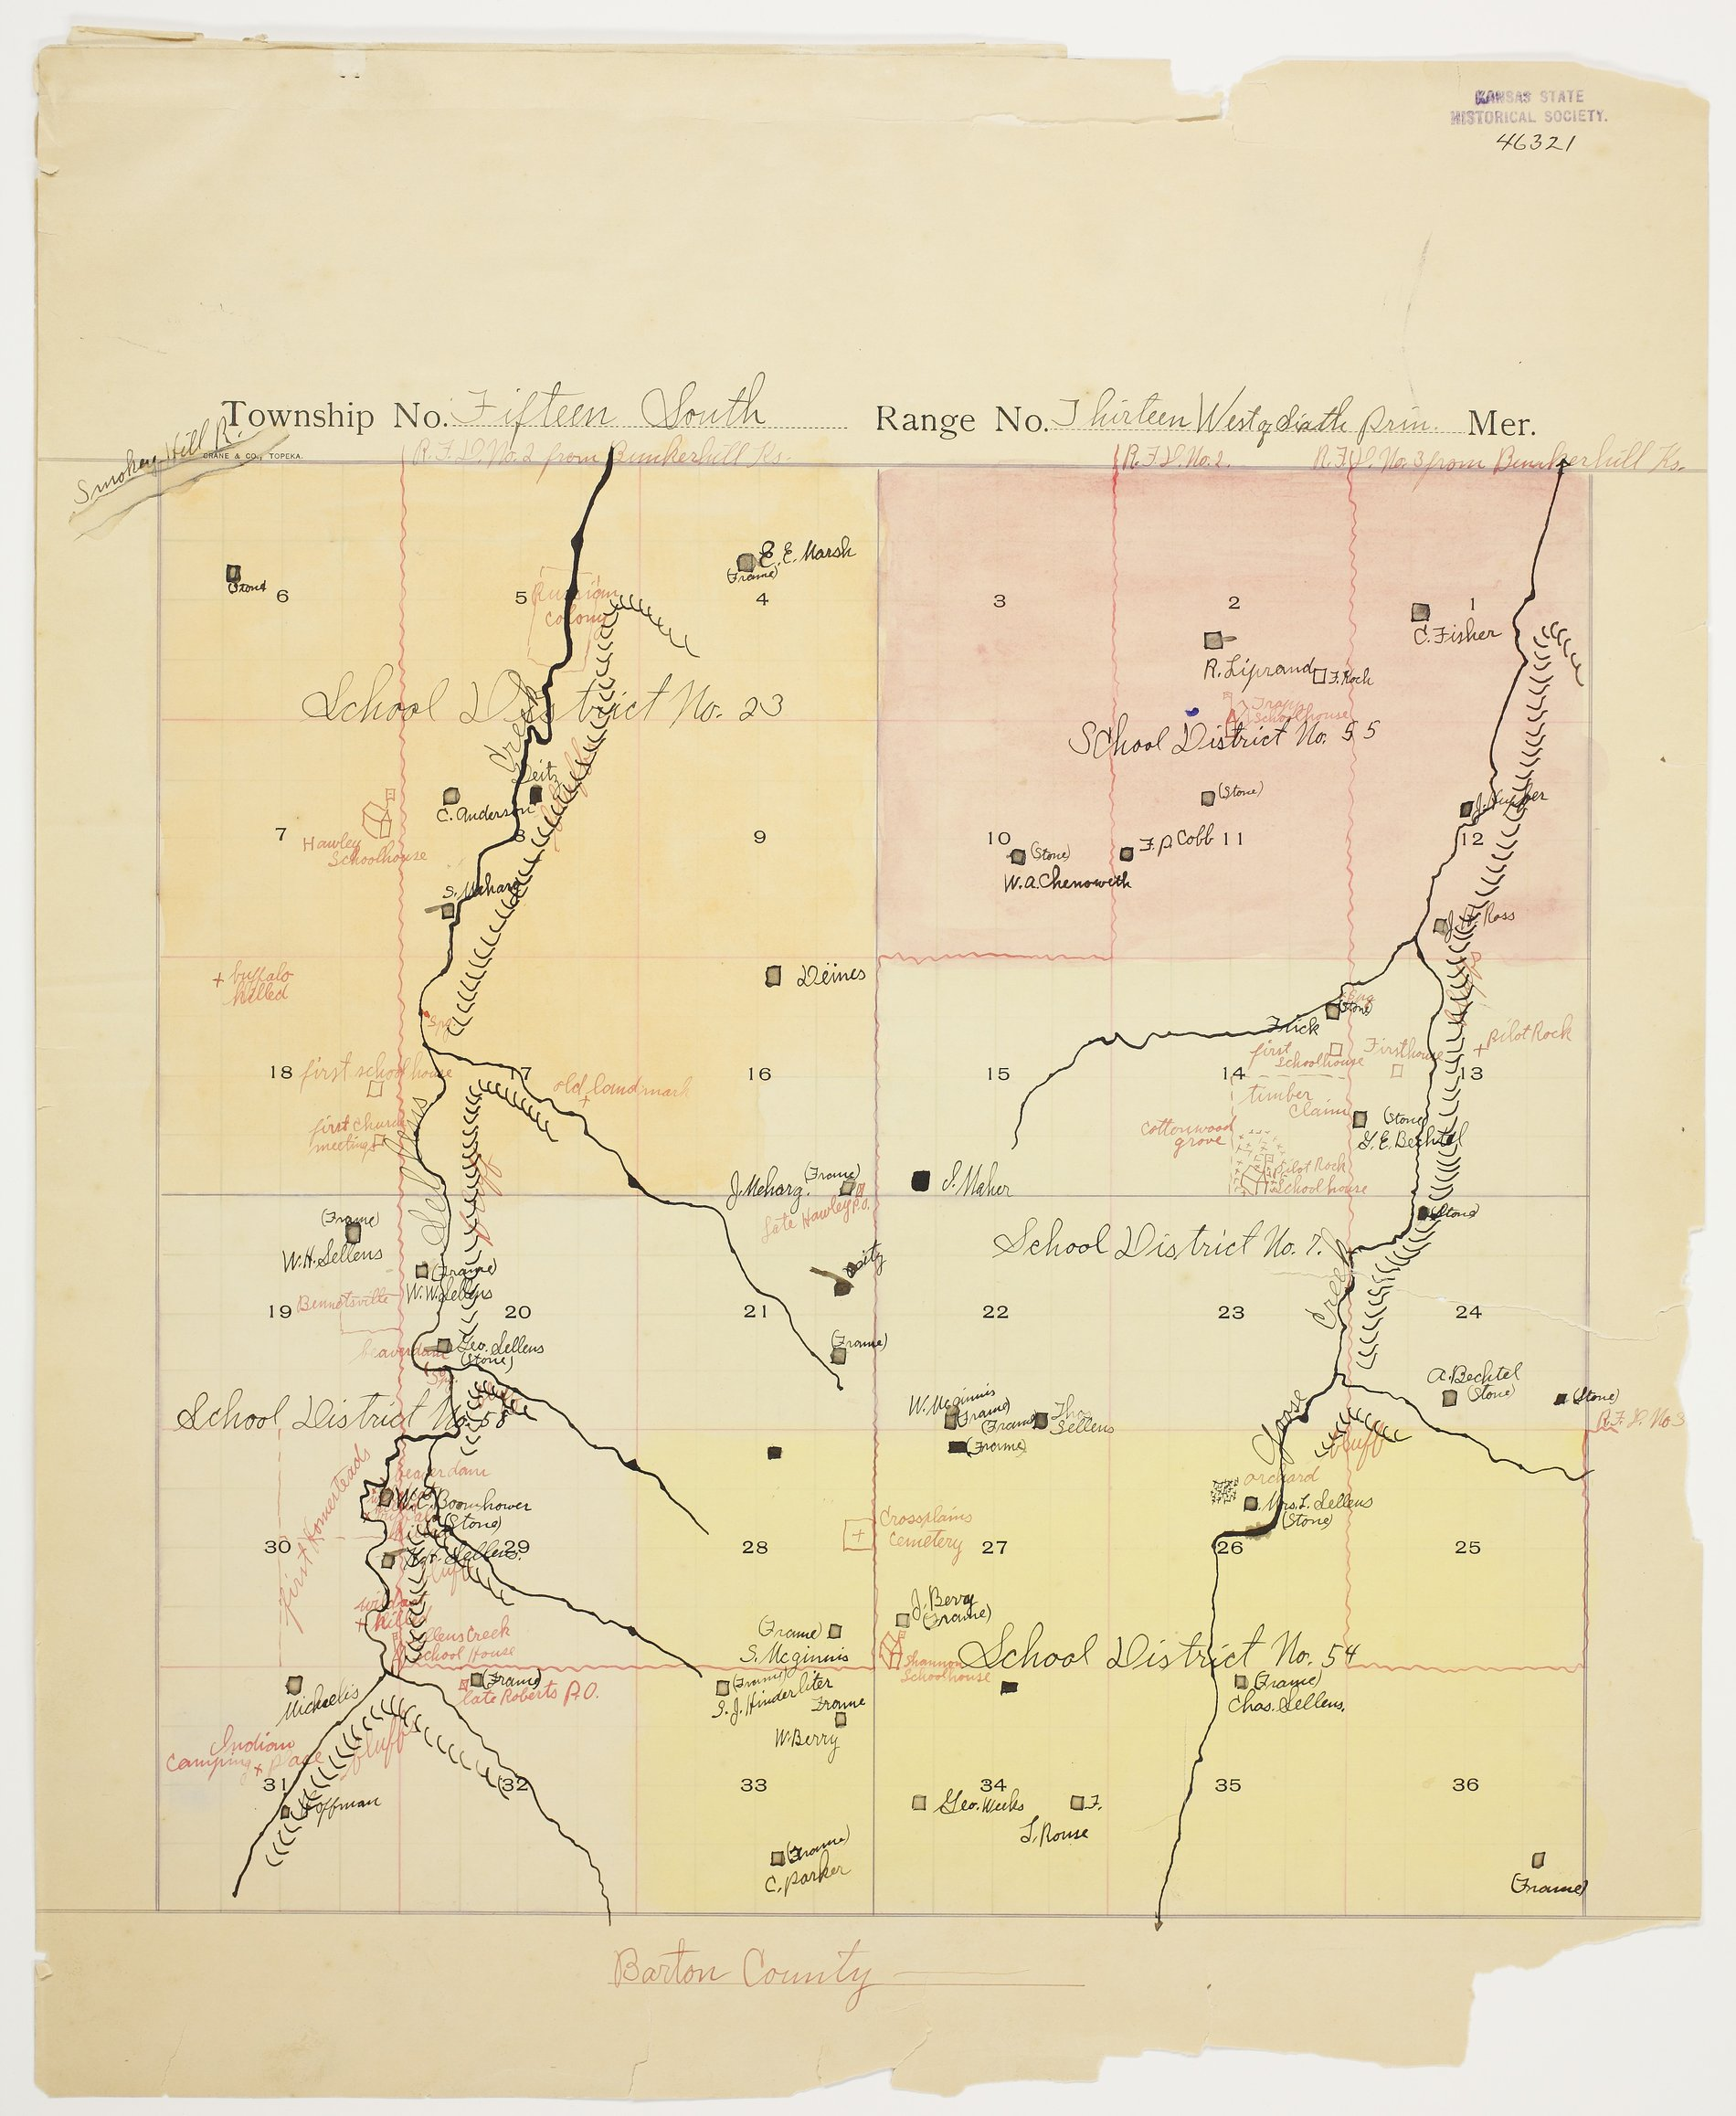 Clyde Markley's map of Township 15 South, Range 13 West, Russell County - 1